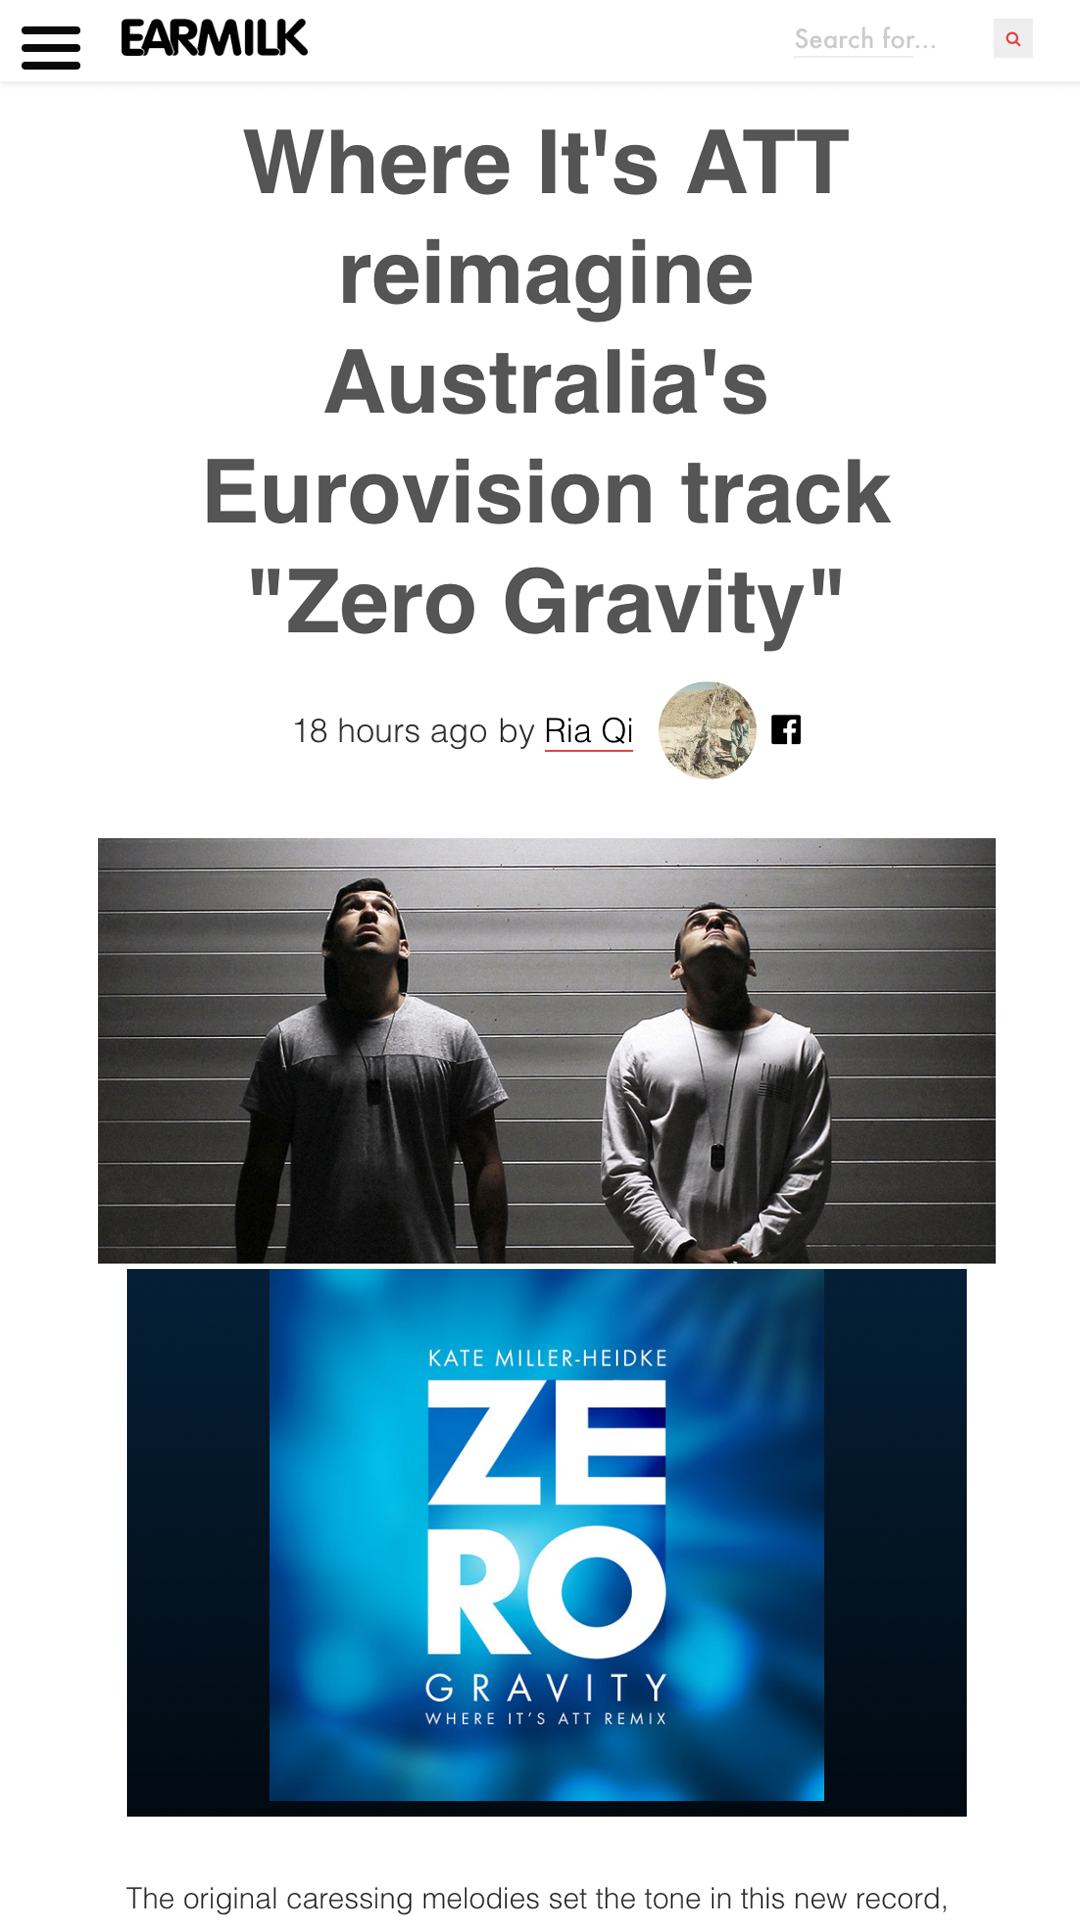 EARMILK- Zero Gravity WIA Remix